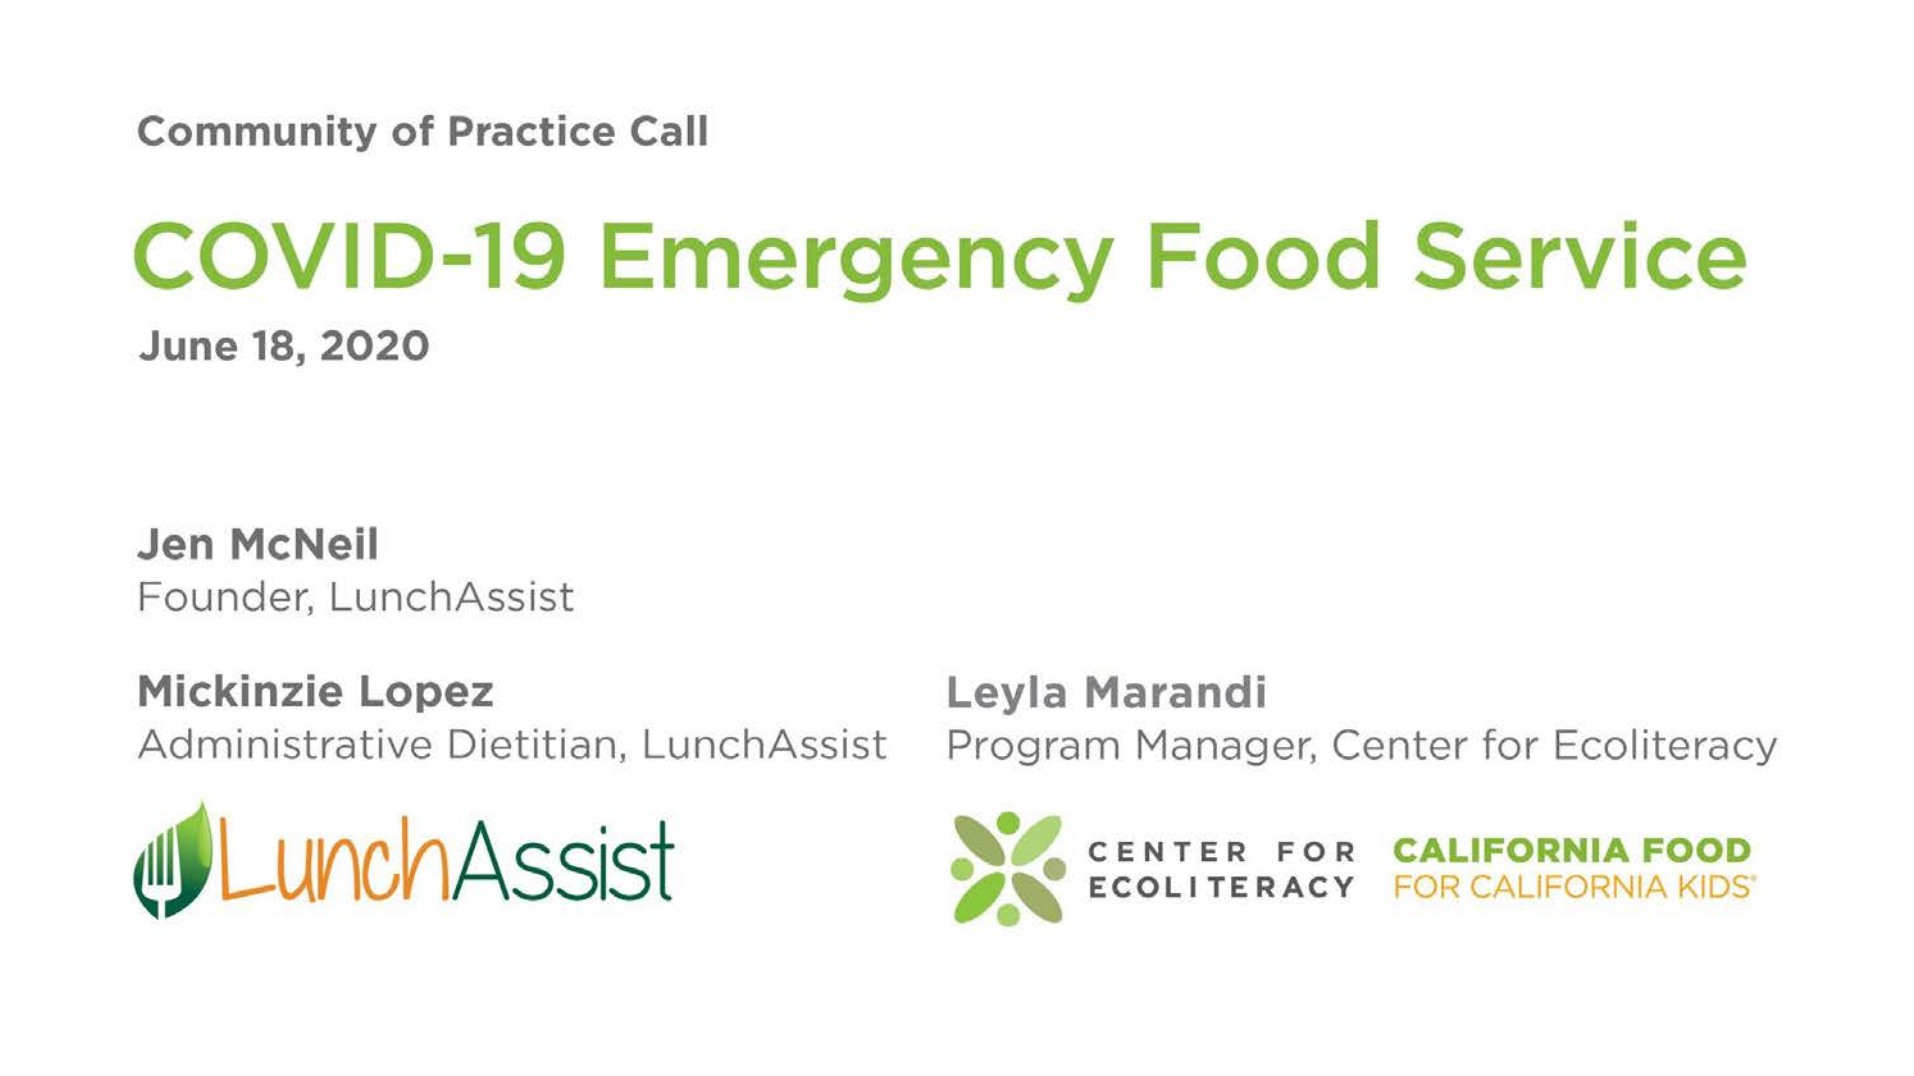 COVID-19 Emergency Food Service Community of Practice Call